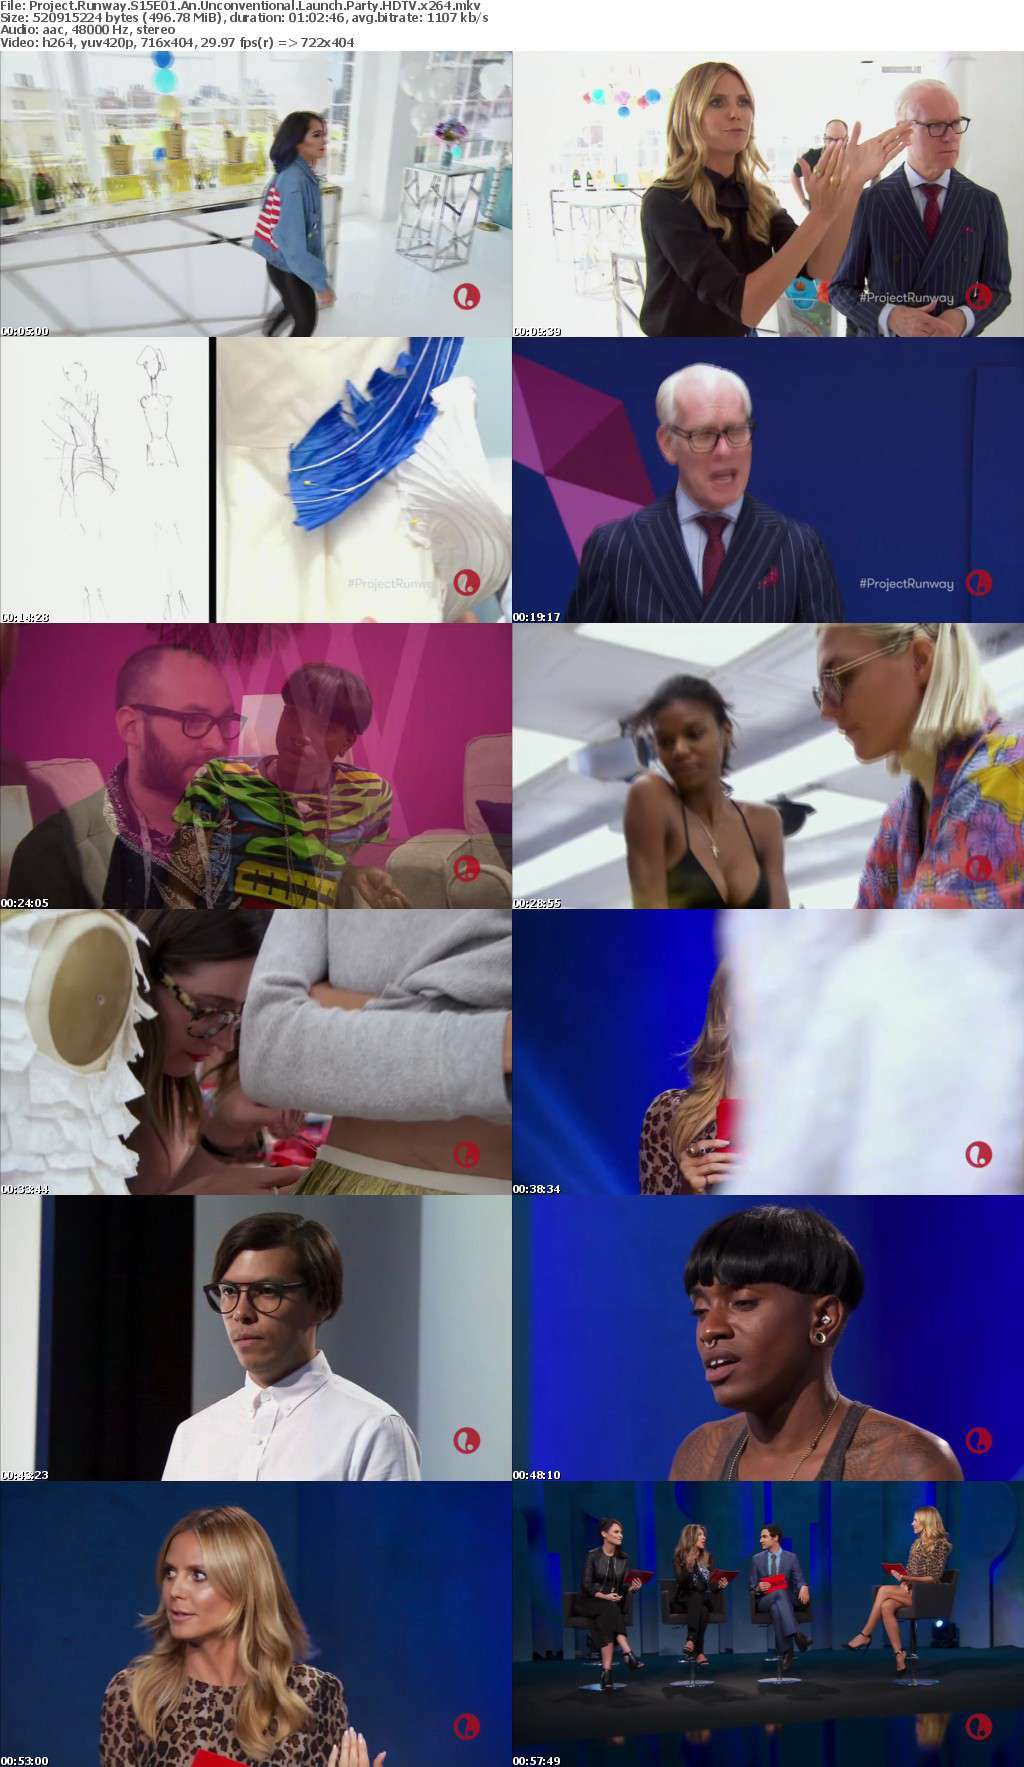 Project Runway S15E01 An Unconventional Launch Party HDTV x264